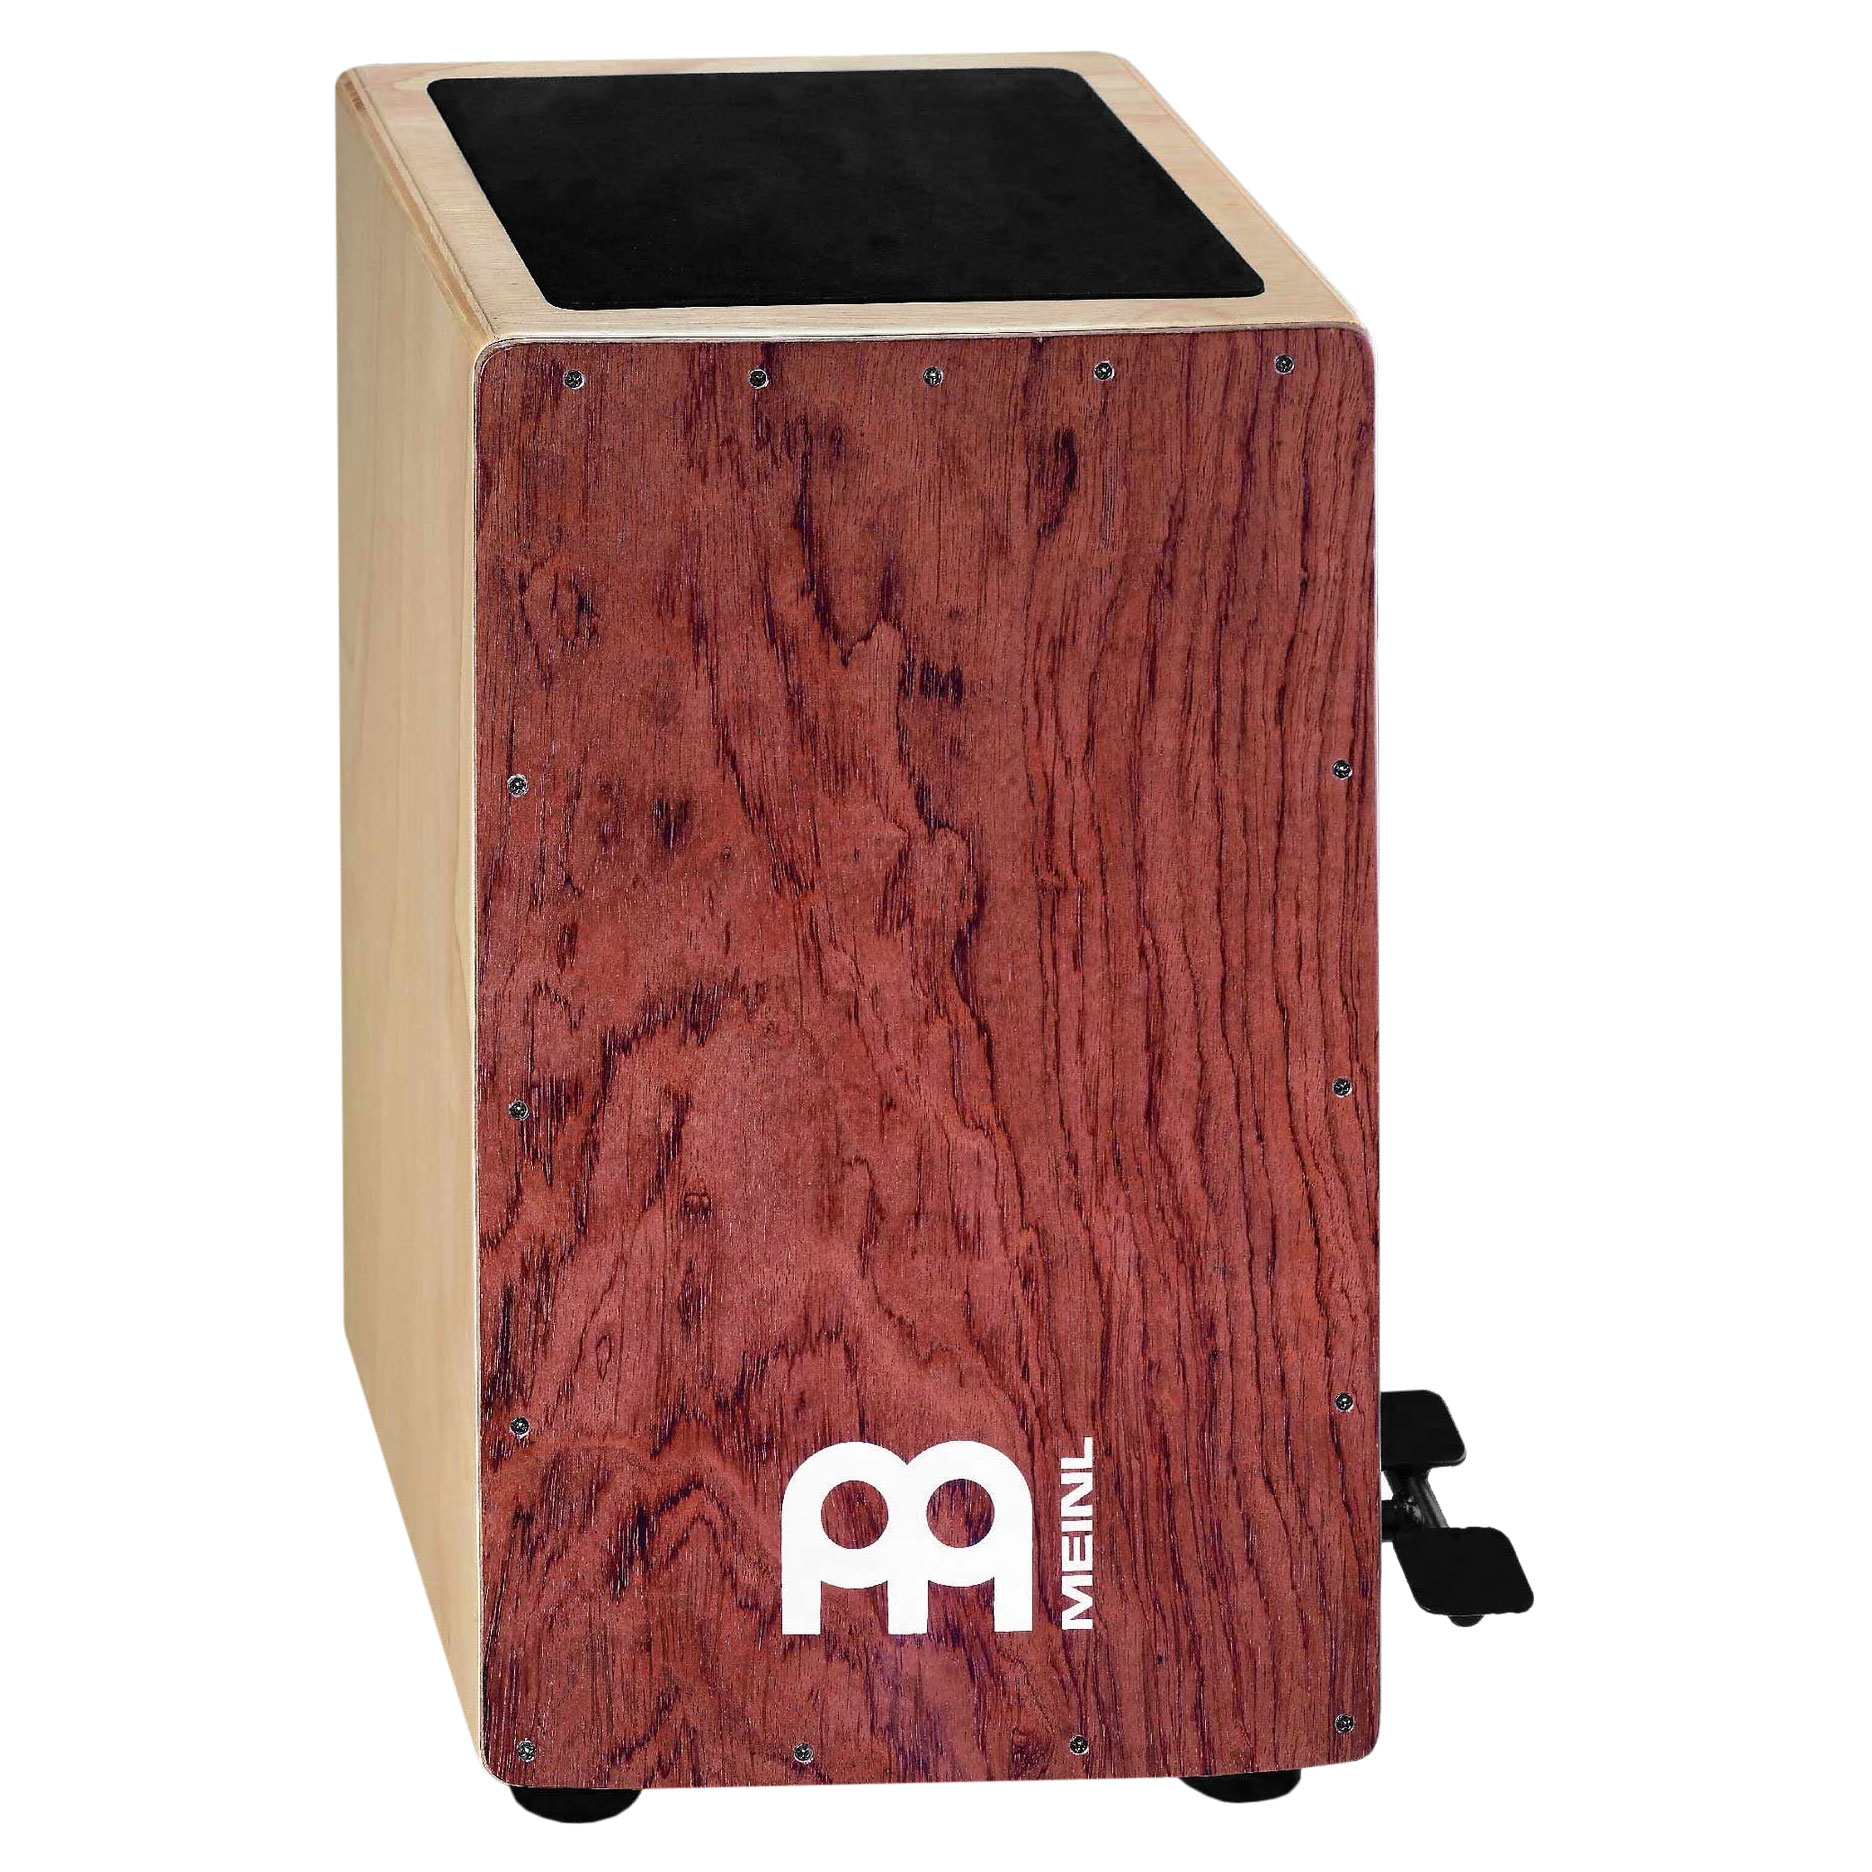 Meinl Pedal Snare Cajon with Bubinga Frontplate